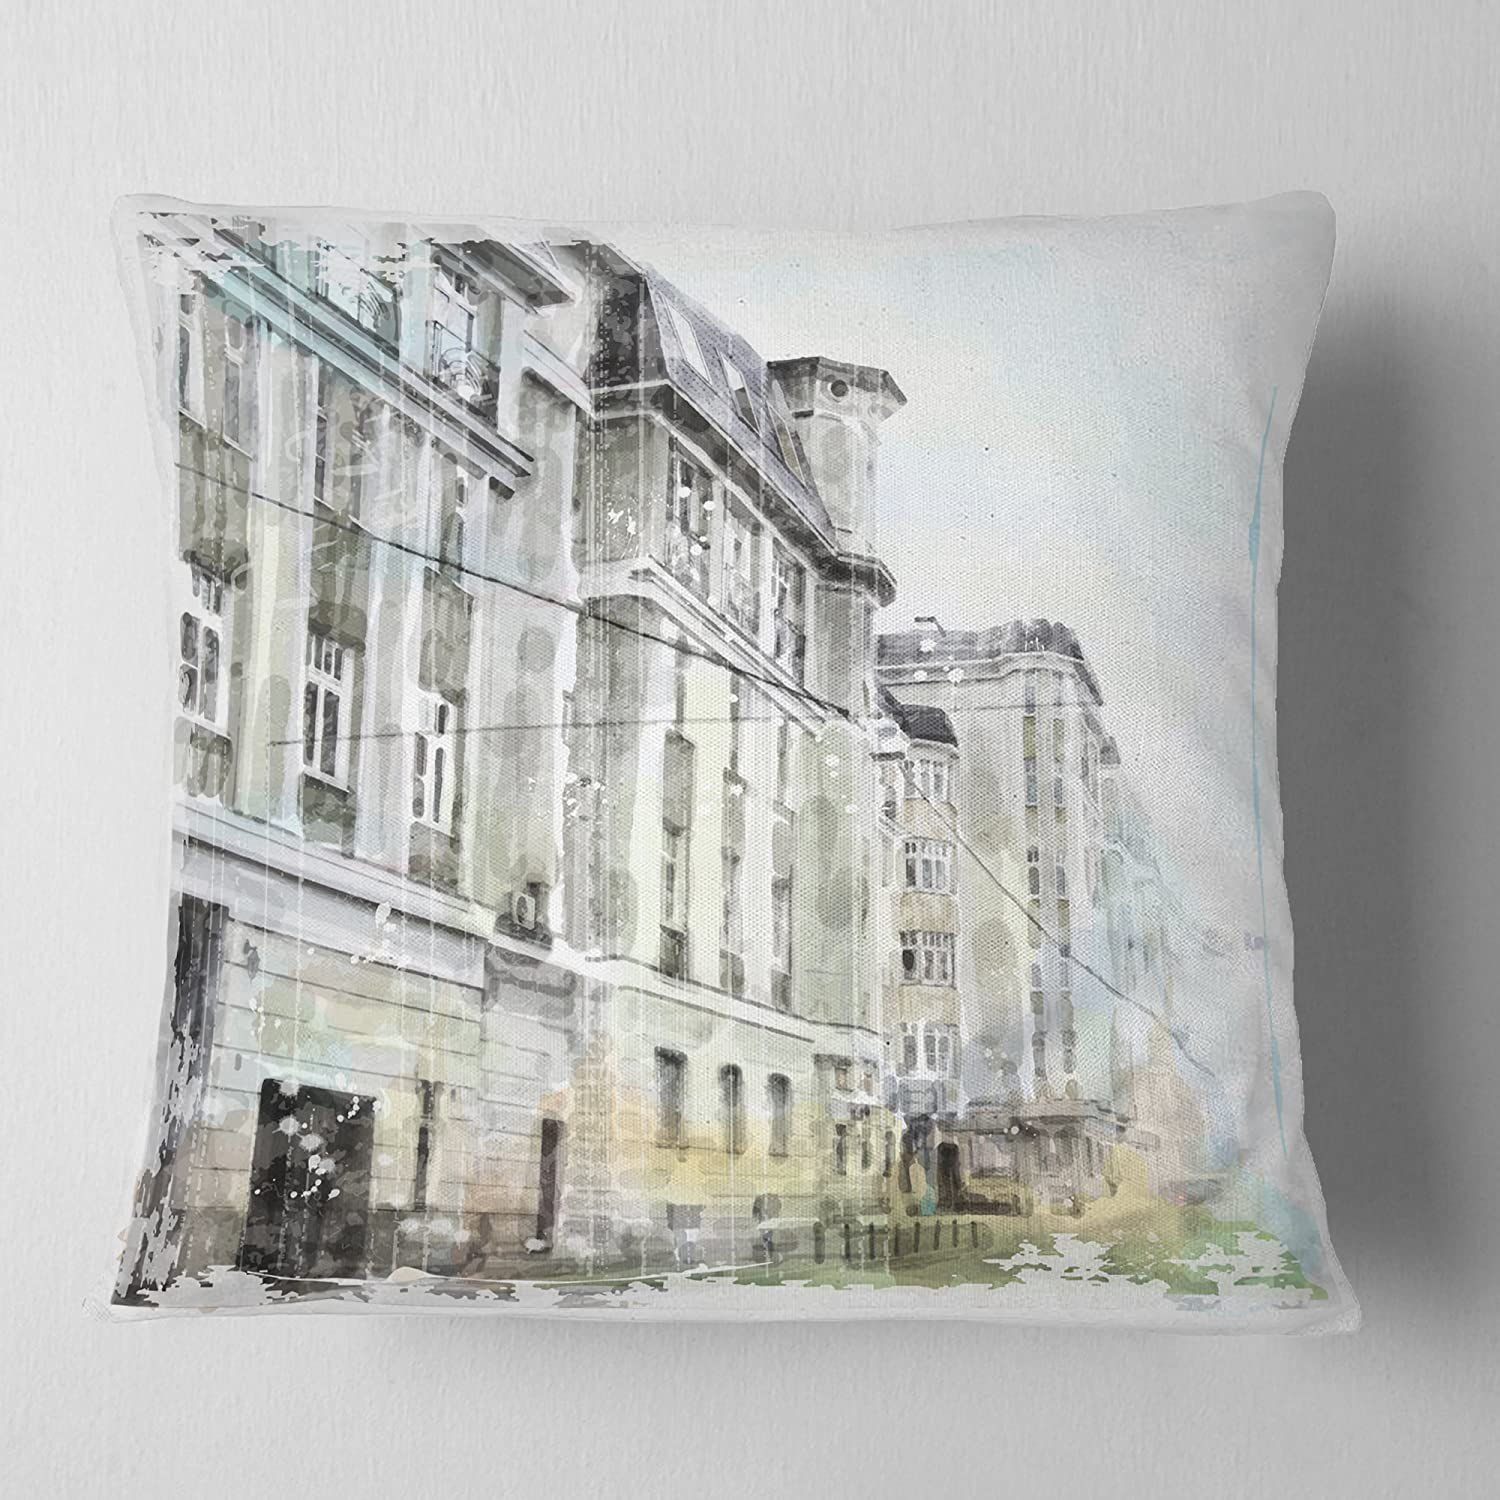 Insert Printed On Both Side in Sofa Throw Pillow 16 in Designart CU7688-16-16 Watercolor Dark Illustration Cityscape Painting Cushion Cover for Living Room x 16 in